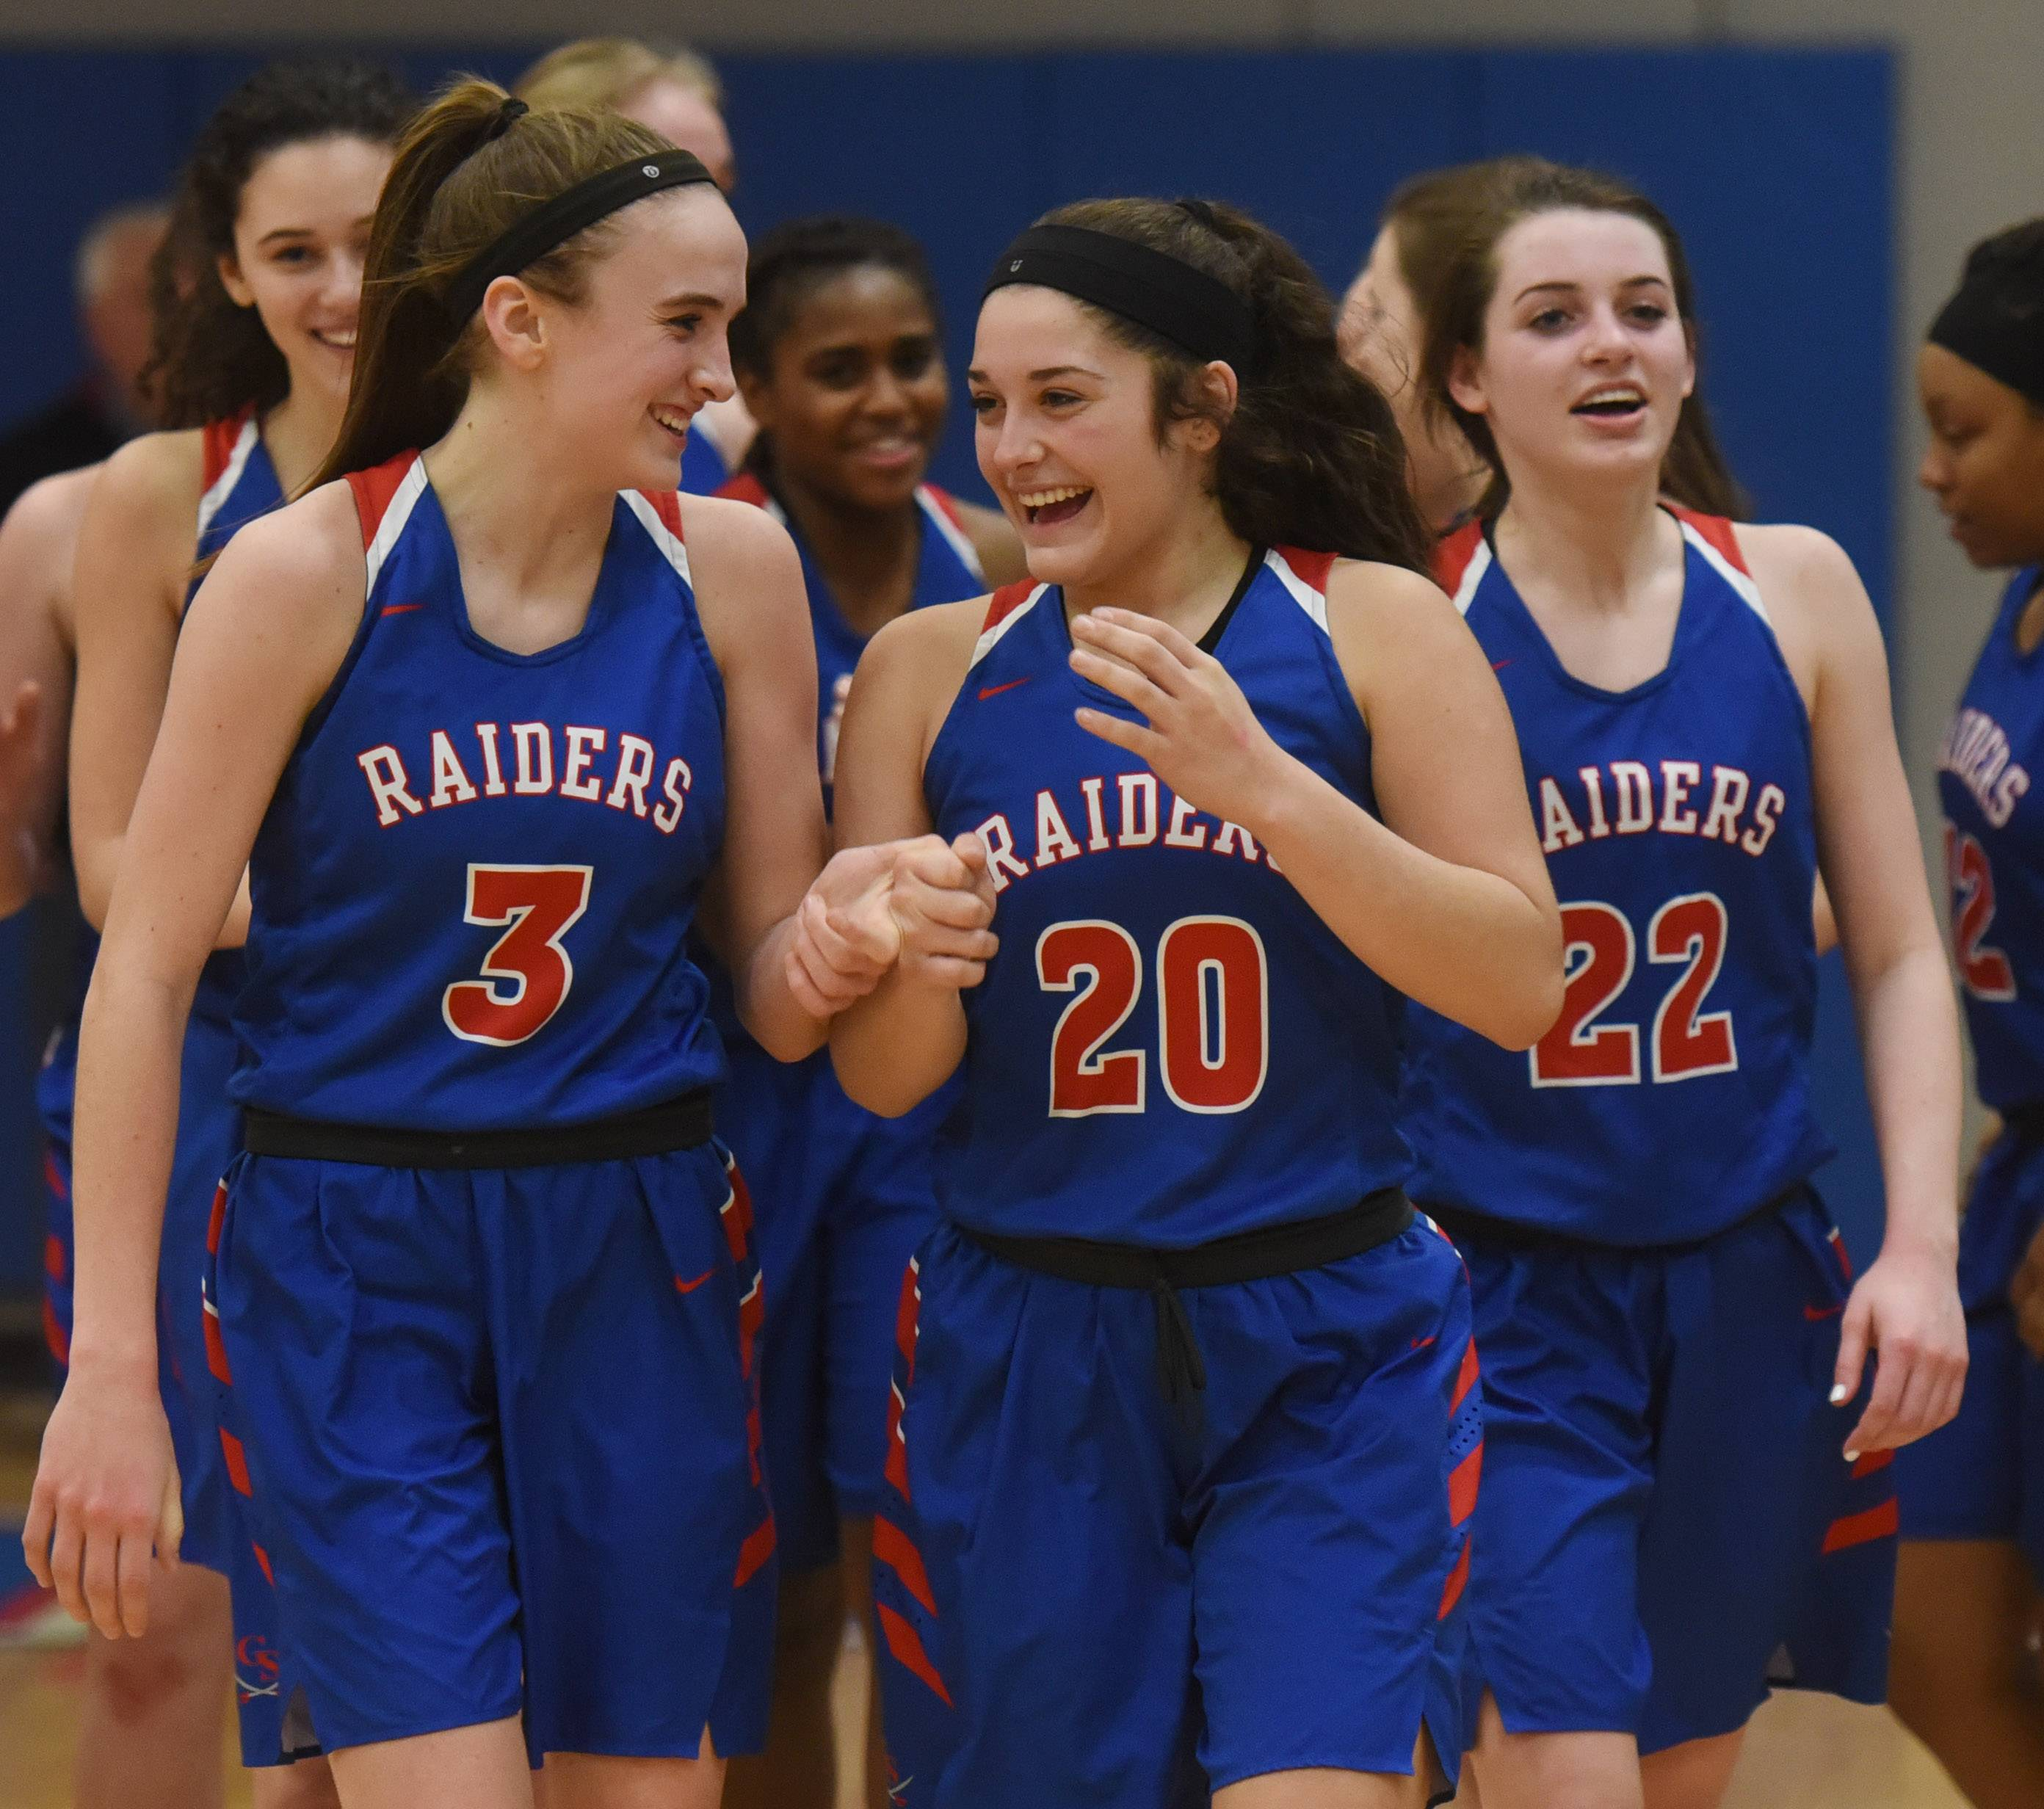 Glenbard South's Lauren Cohen, left, and Cat Karr celebrate together following their team's 34-24 victory over St. Viator during the Class 3A girls baskeball supersectional at Elgin Community College Monday.